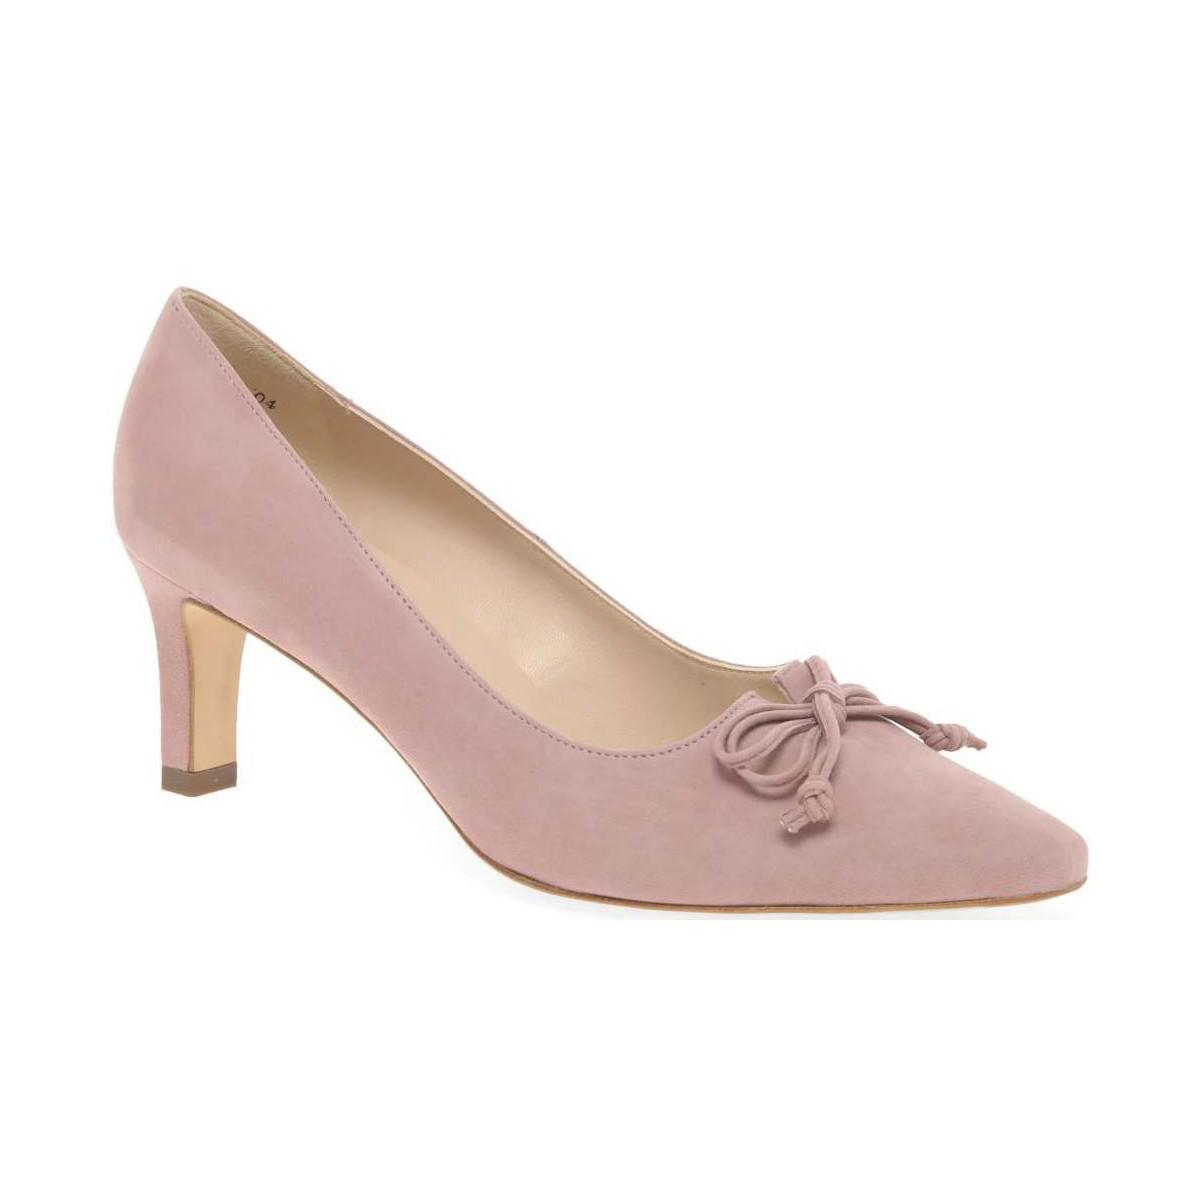 Peter Kaiser. Mizzy Womens Court Shoes Women's Court Shoes In Pink